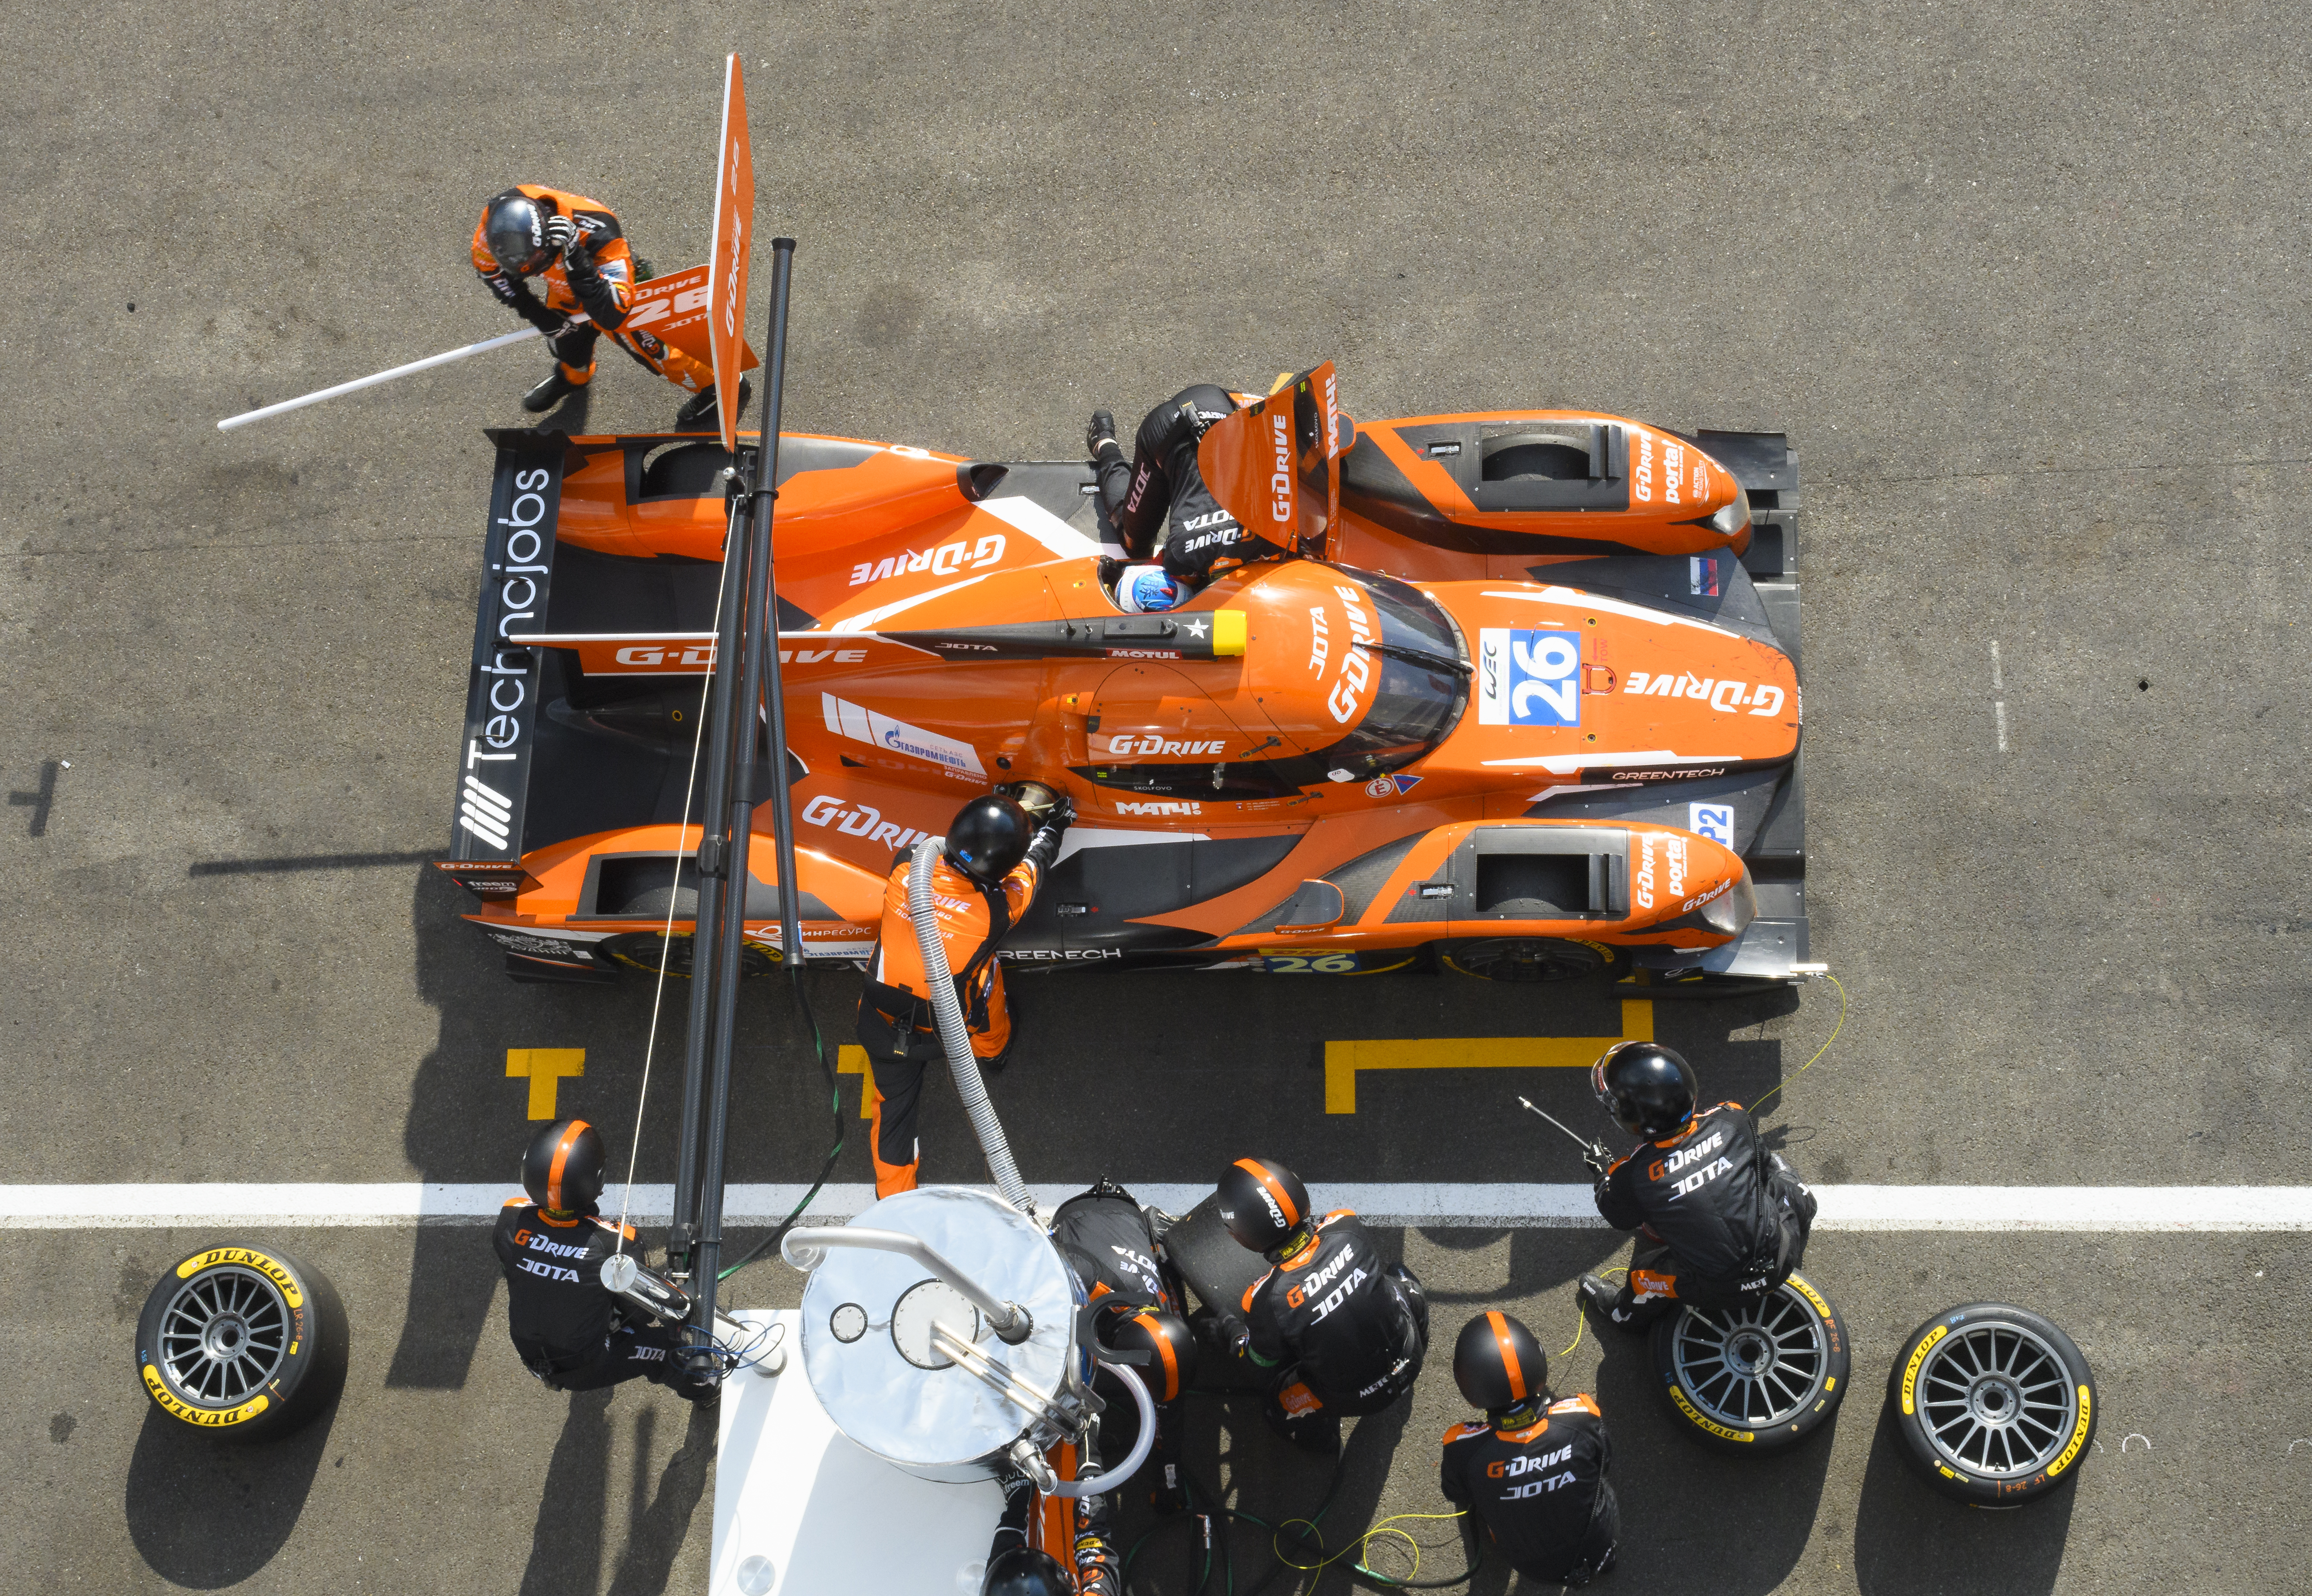 G-Driving Pit-Stop